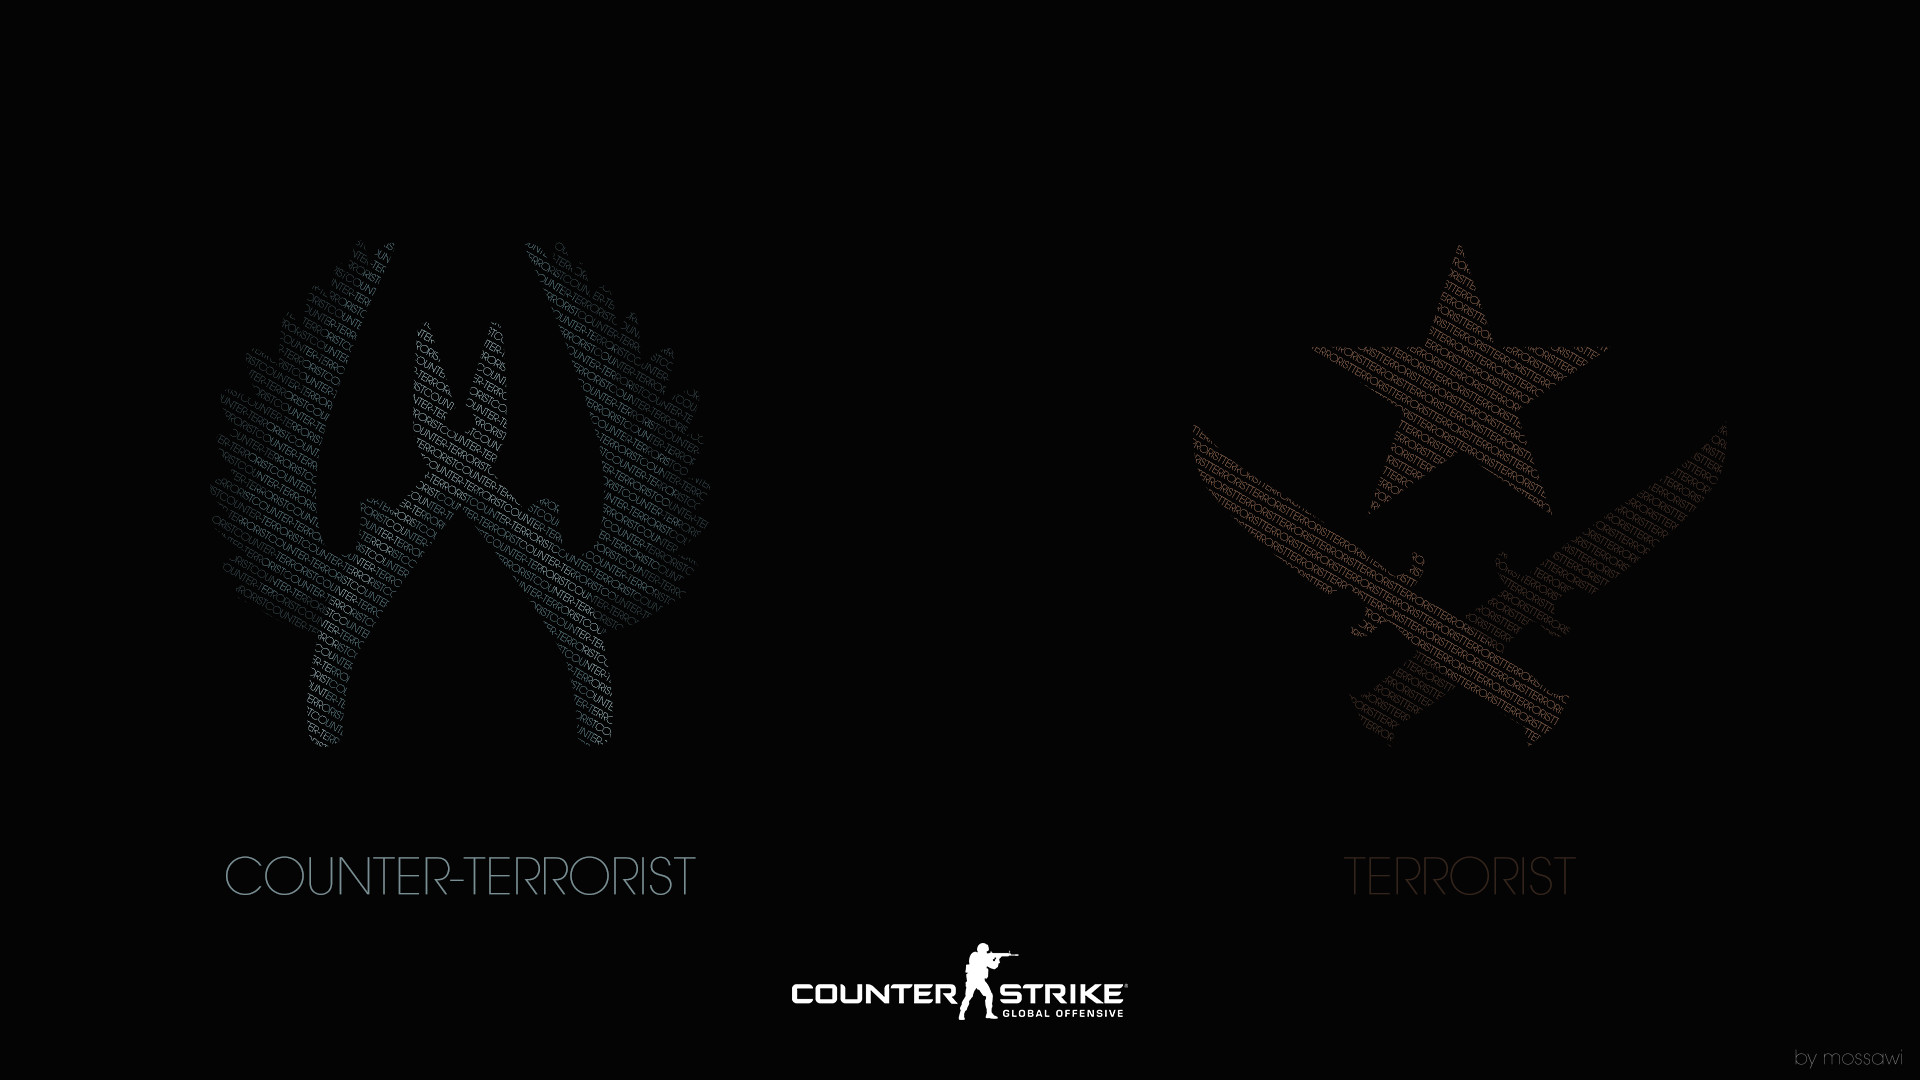 1920x1080 ... http://www.mossawi.nl/csgo/assets/images/original/ct_t_background.png